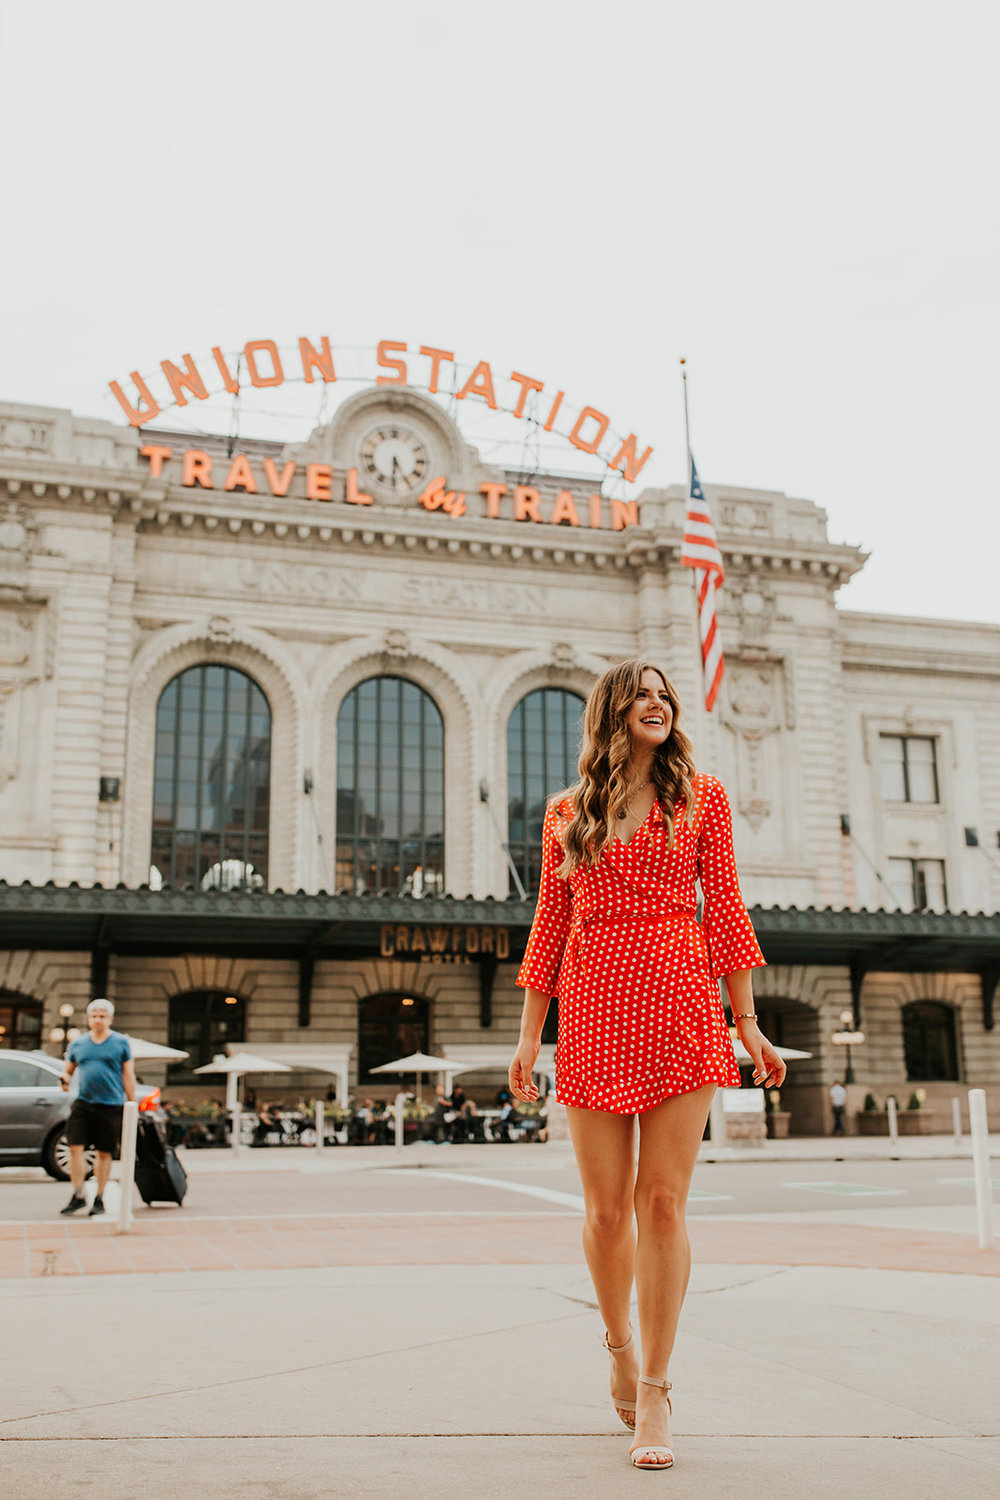 UnionStation_Portraits-2.jpg